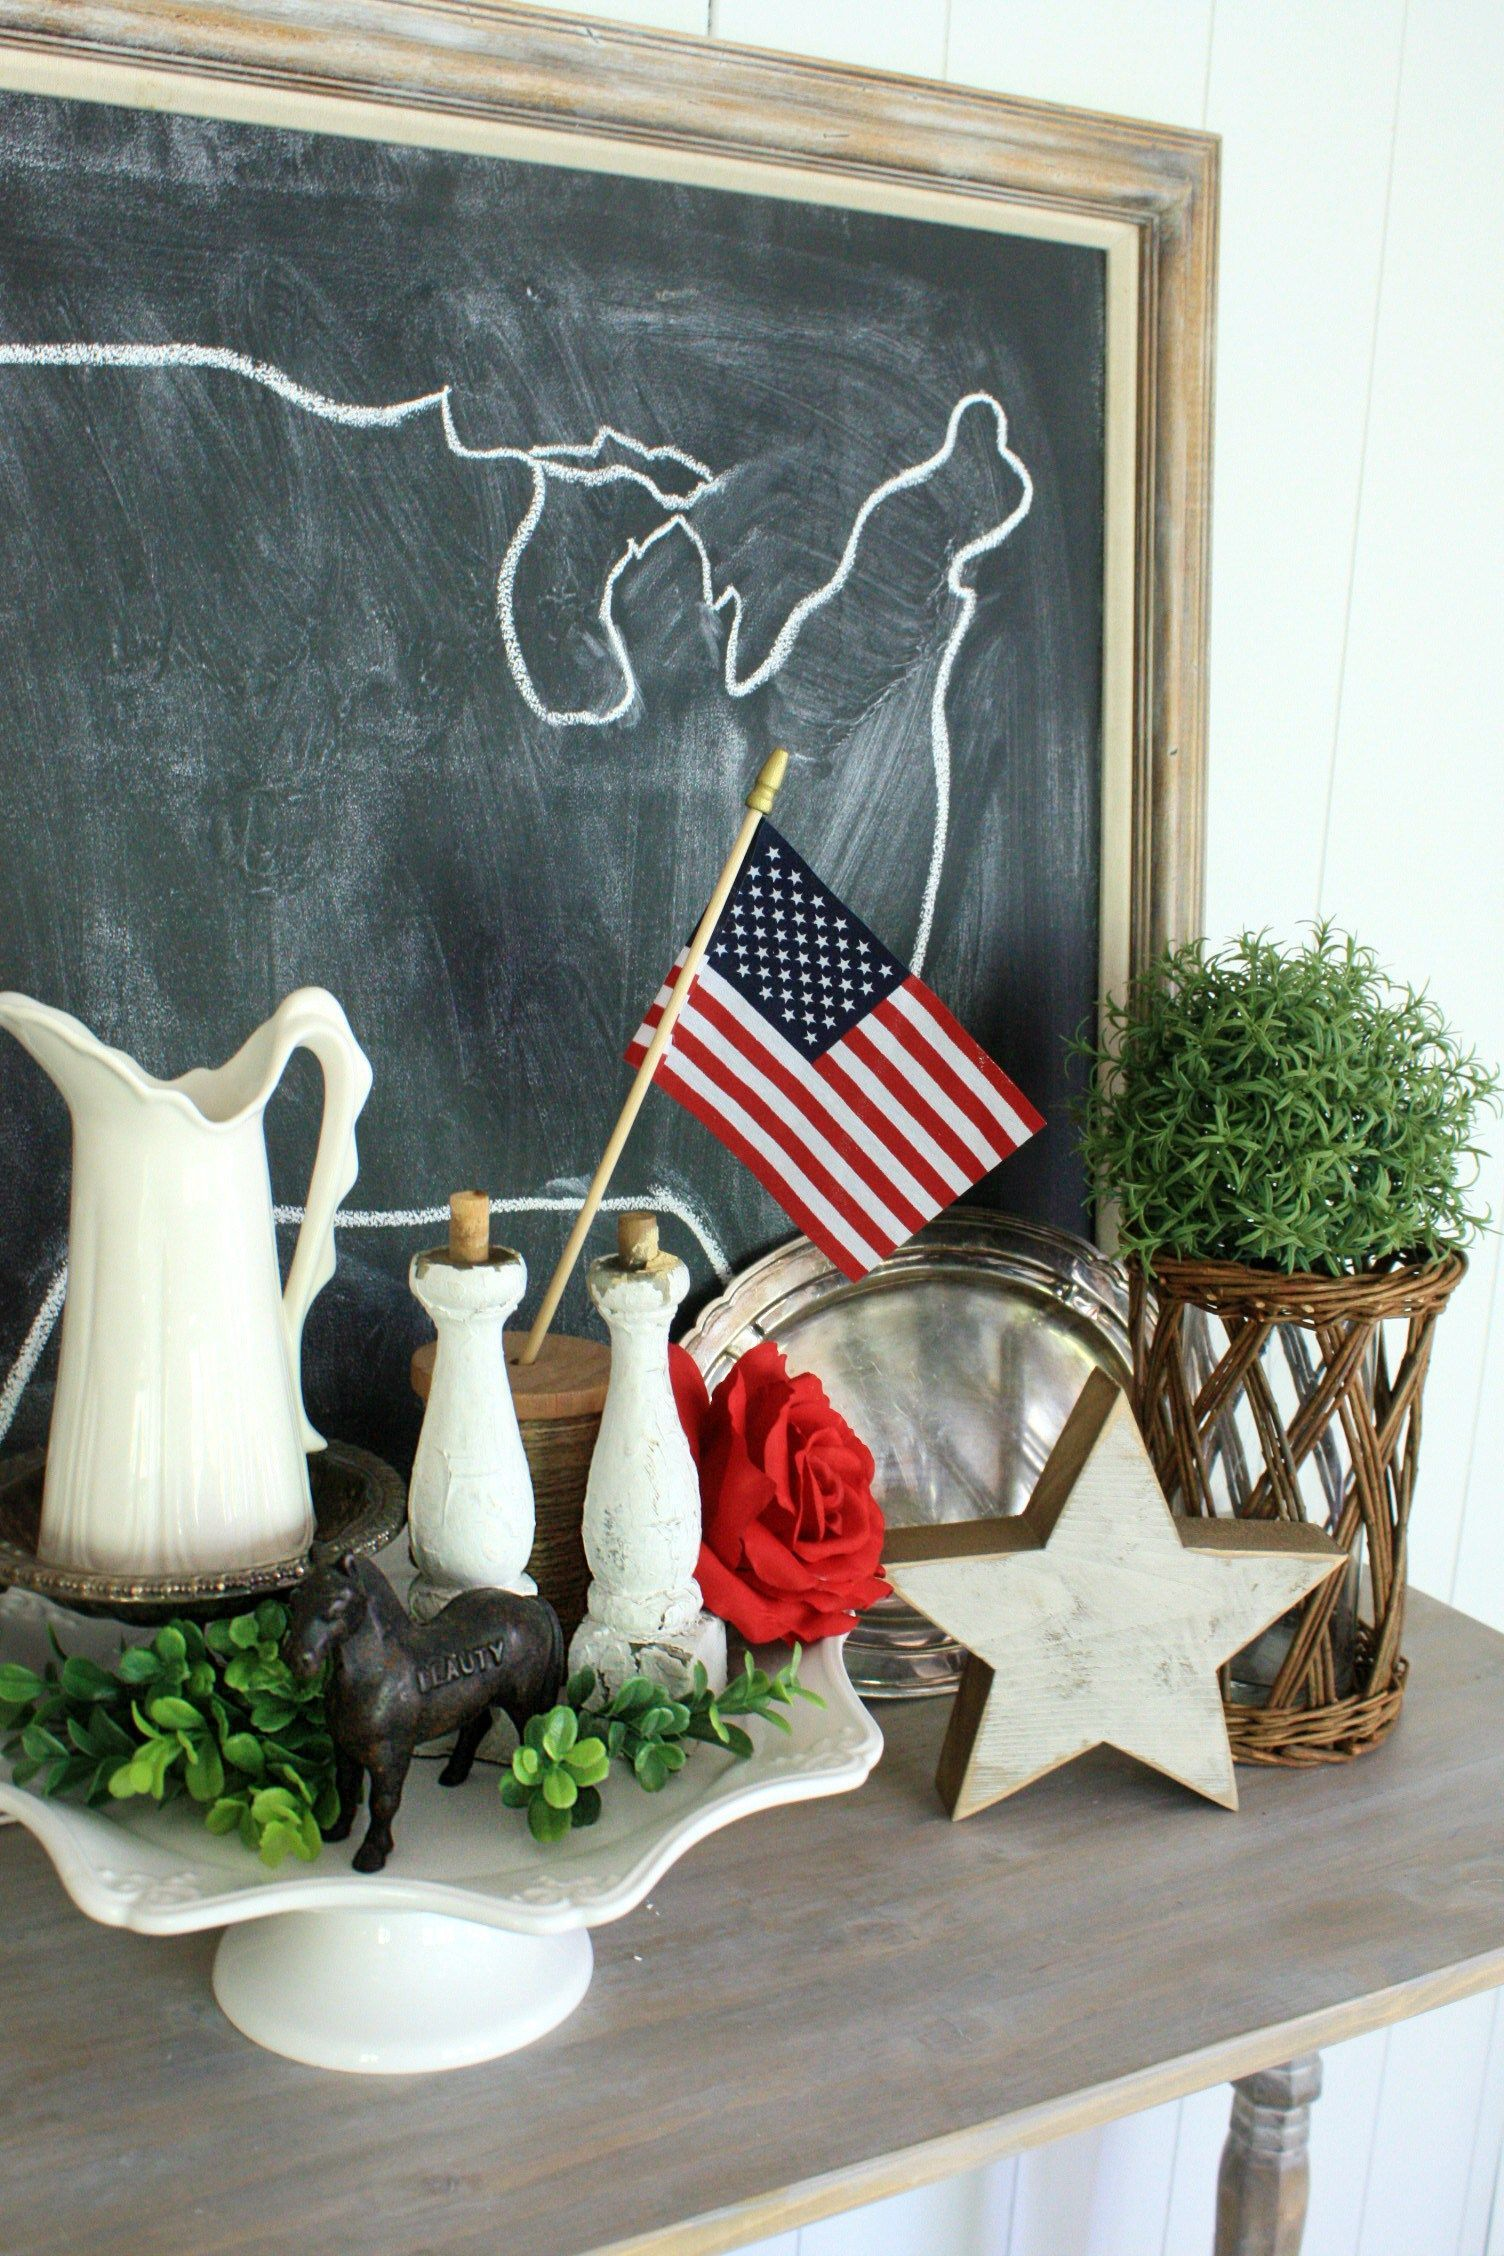 What Adorable 4th Of July Decor Better Way To Decorate For Then With Vintage Items